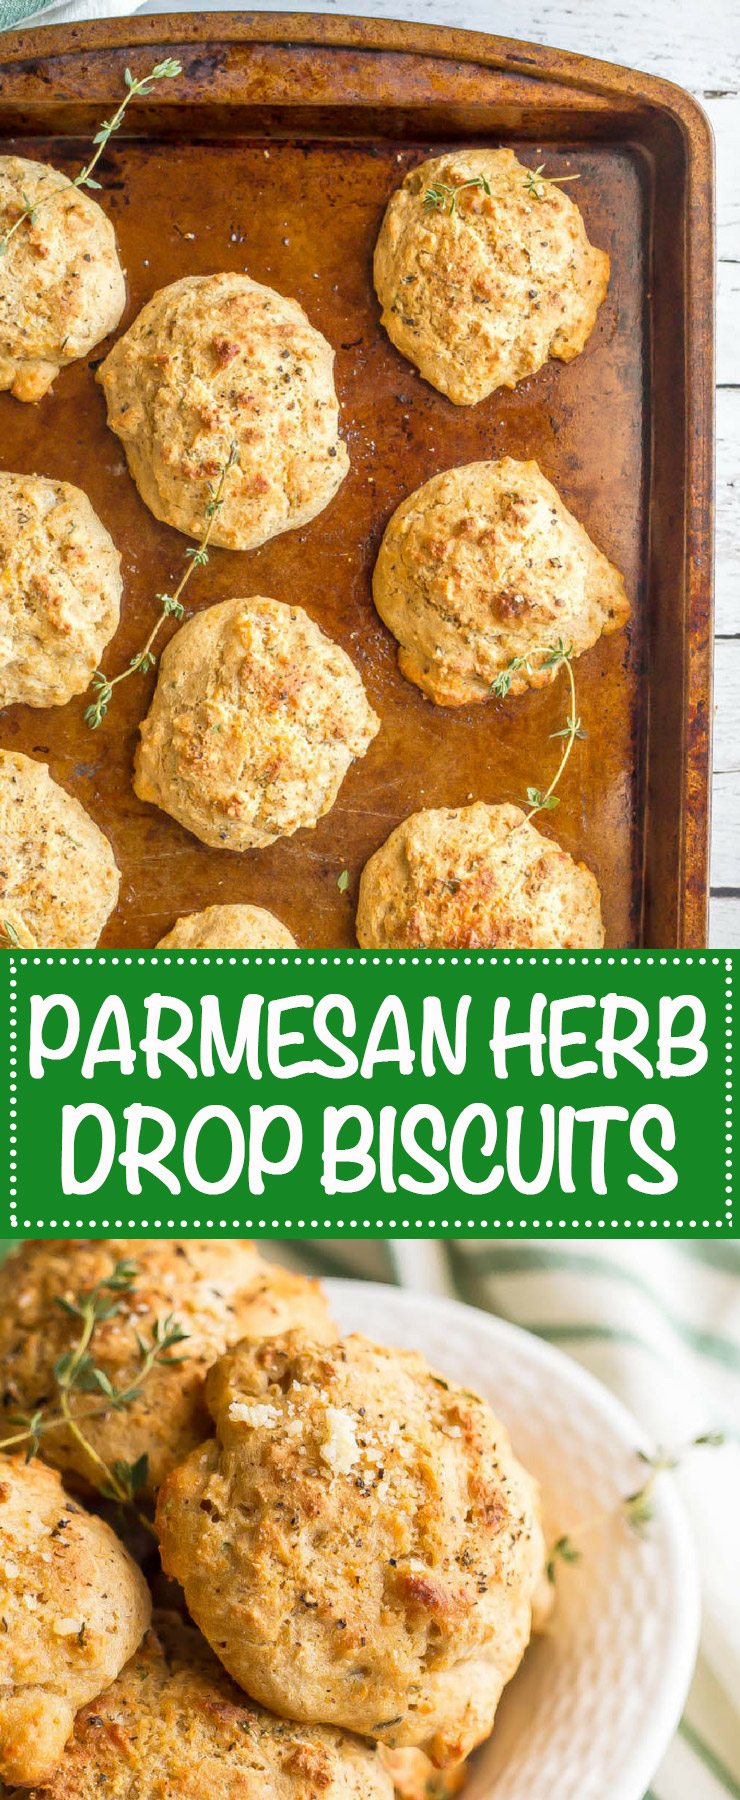 Parmesan herb drop biscuits are a quick and easy savory biscuit that's perfectly fluffy and tender and requires no kneading or rolling! Great for breakfast, brunch, or with soups or chili. #biscuits #brunchrecipes #MothersDayrecipes | www.familyfoodonthetable.com